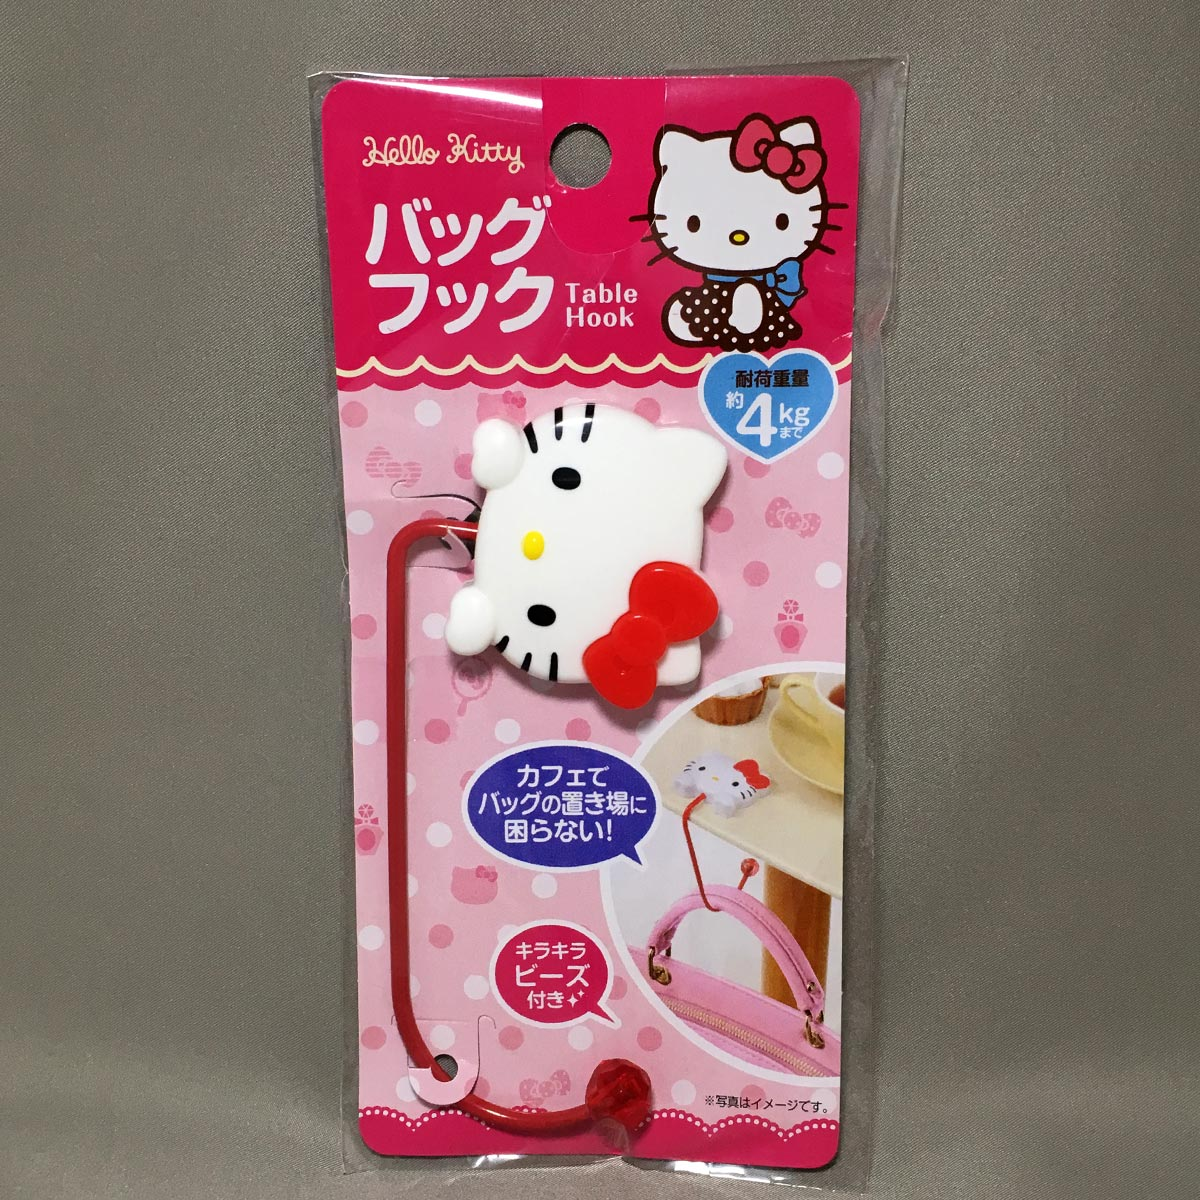 Hello Kitty Table Hook - front packaging